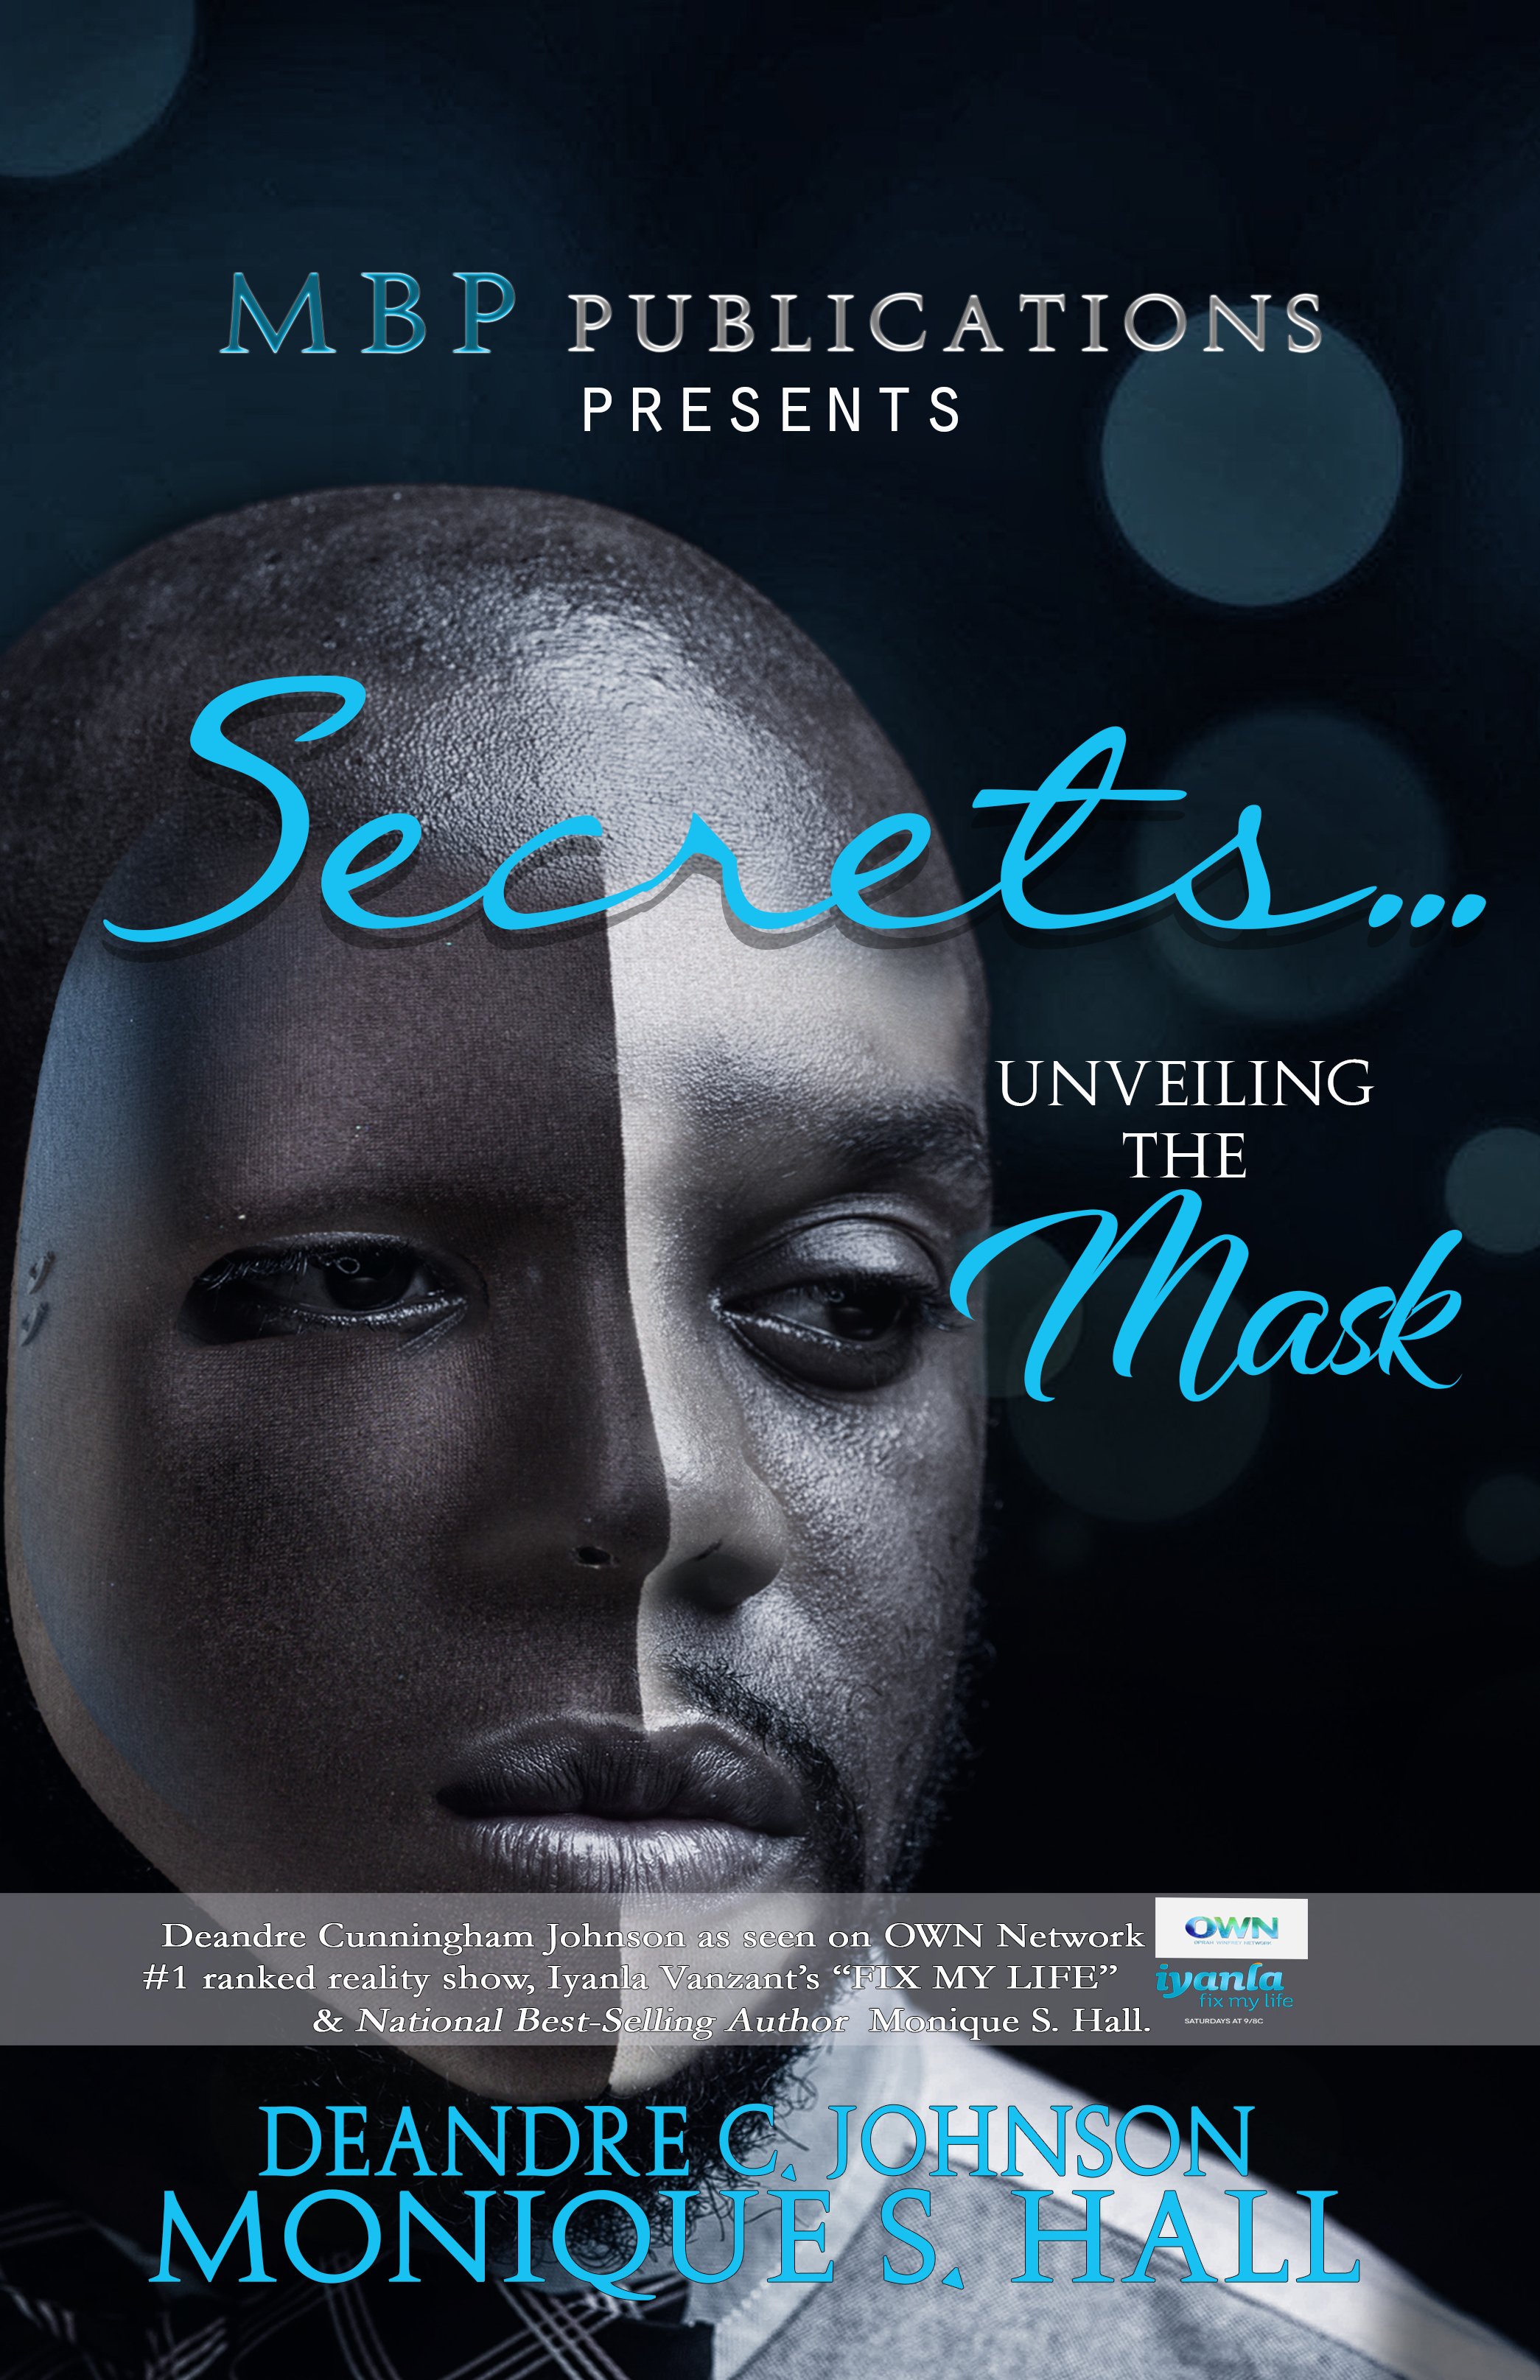 secrets unveiling the mask first concept edited